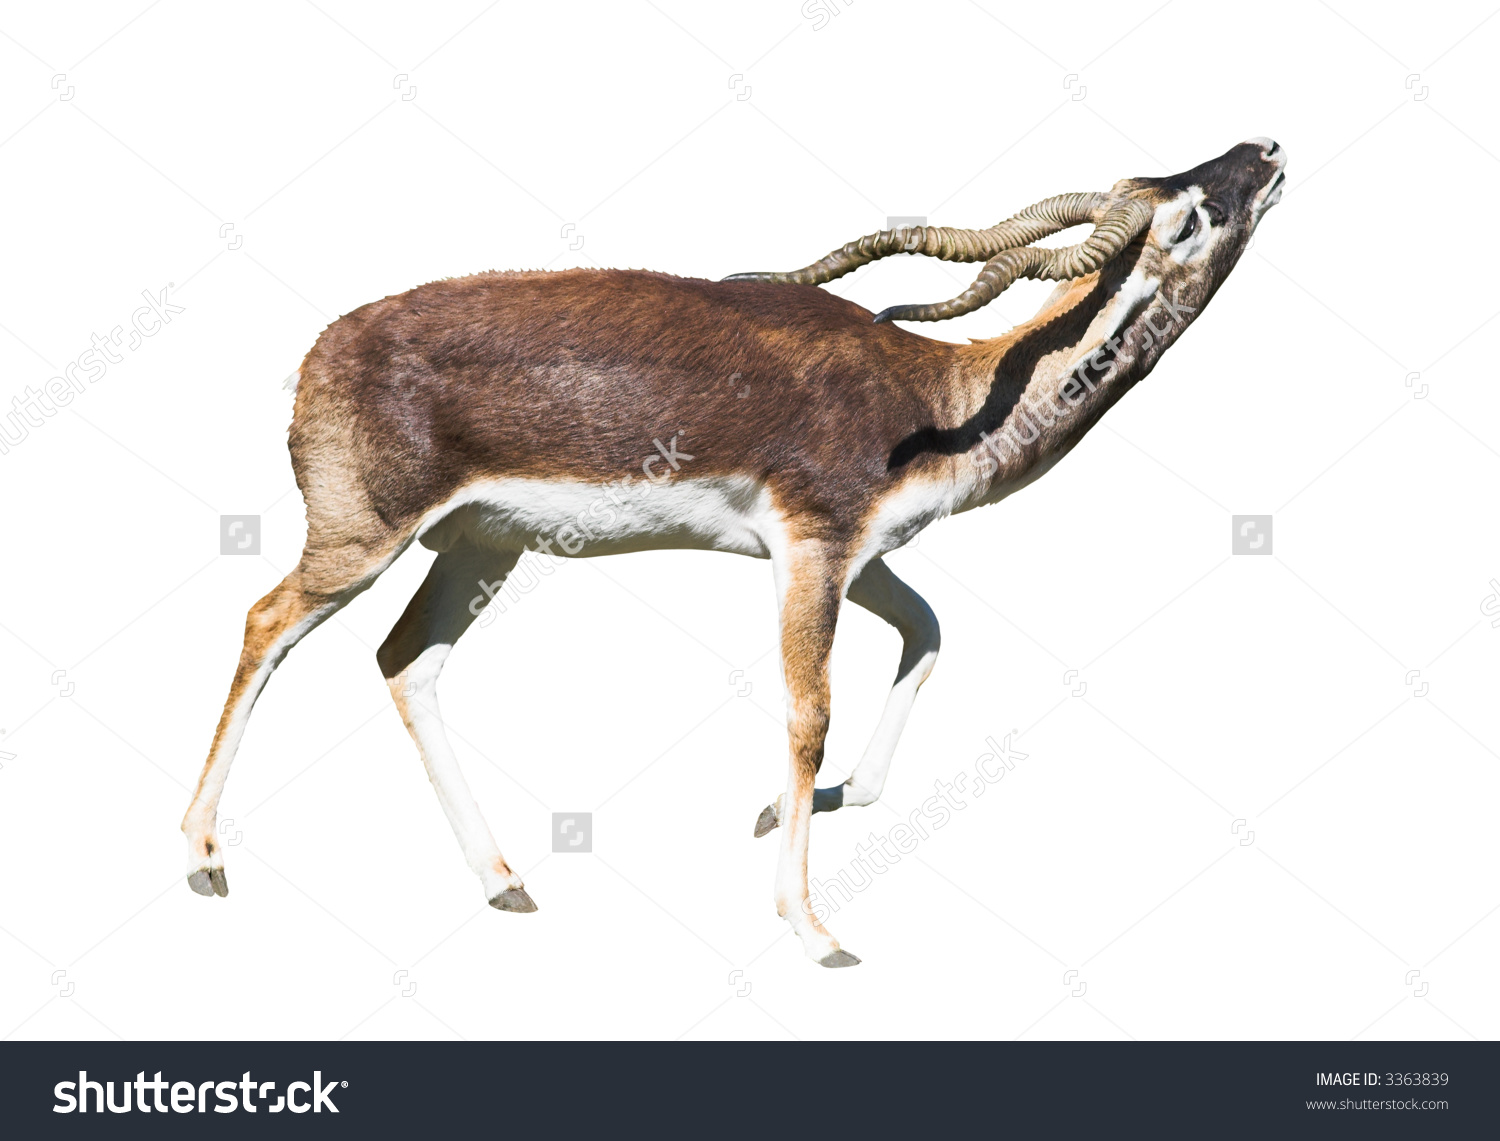 Indian Black Buck Antelope (Antelope Cervicapra L.) Isolated Over.